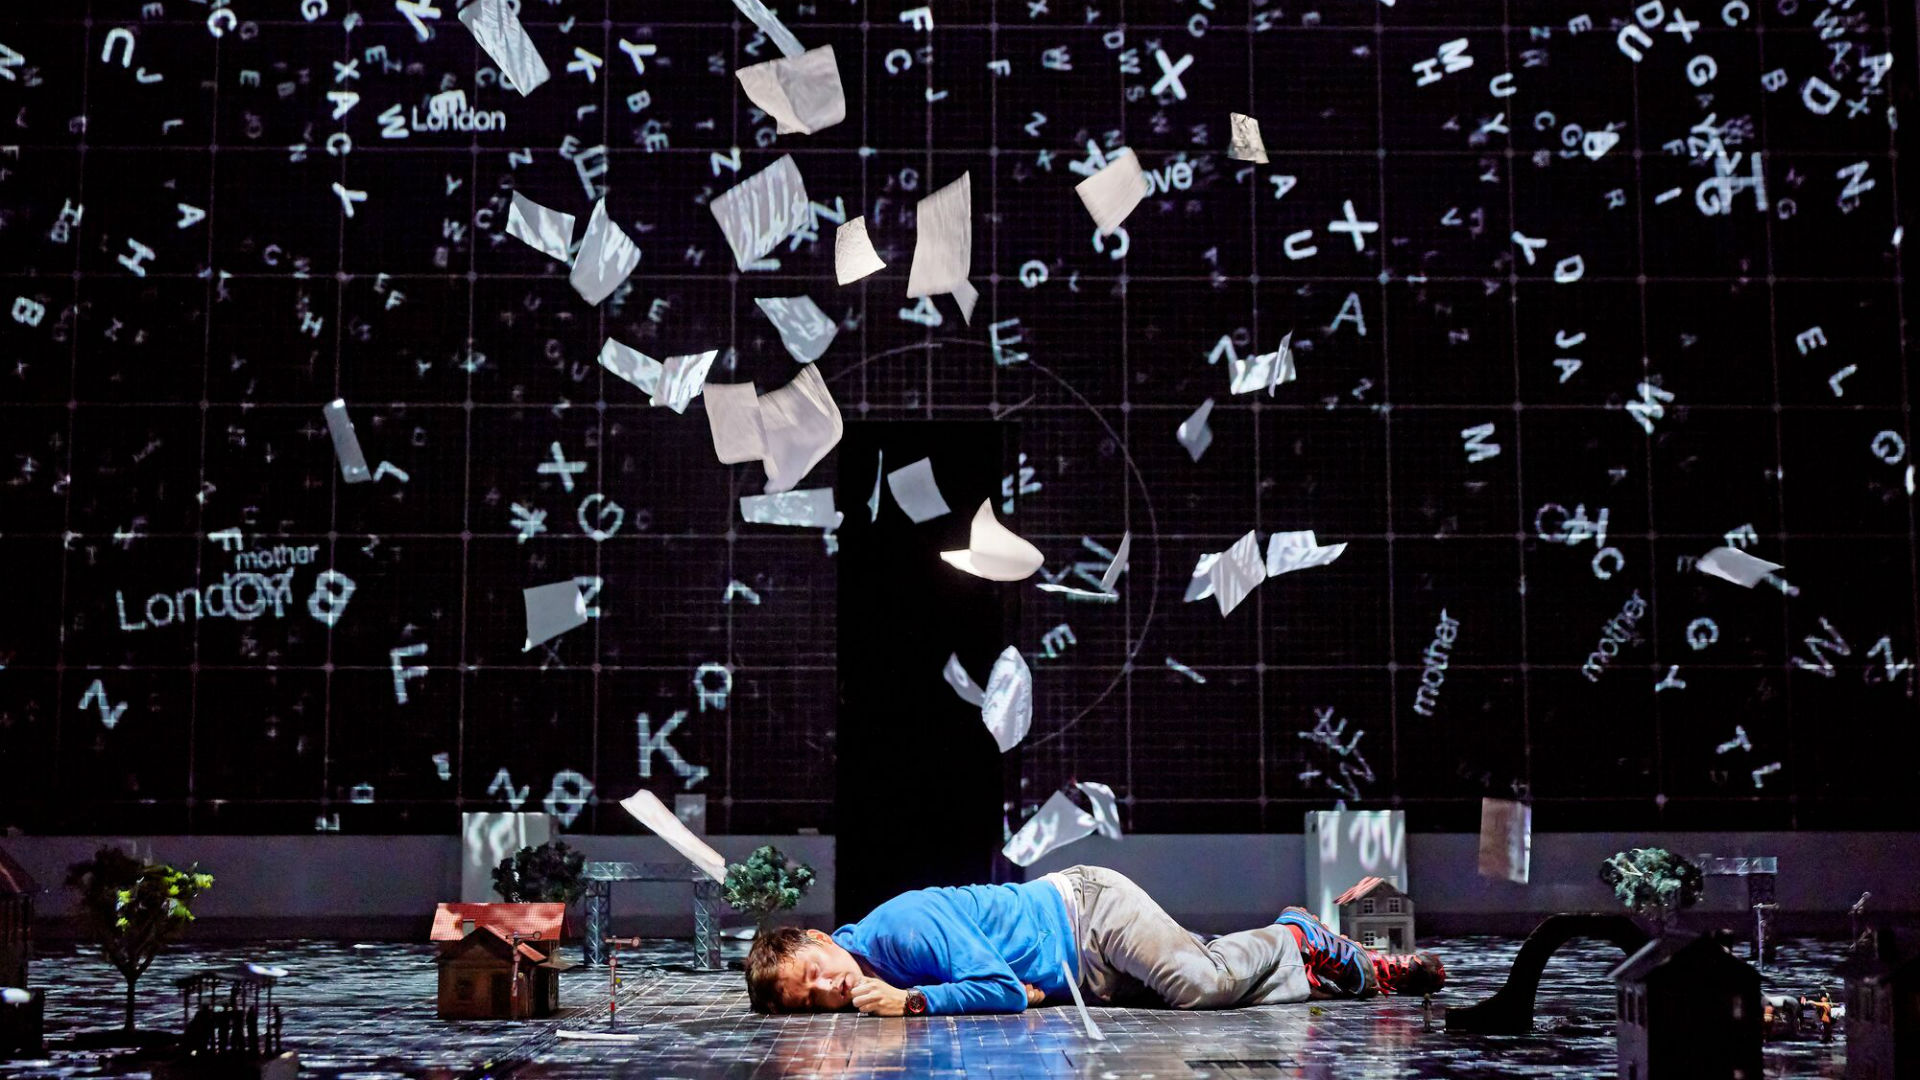 A man is lying on the floor, with papers flying everywhere around him